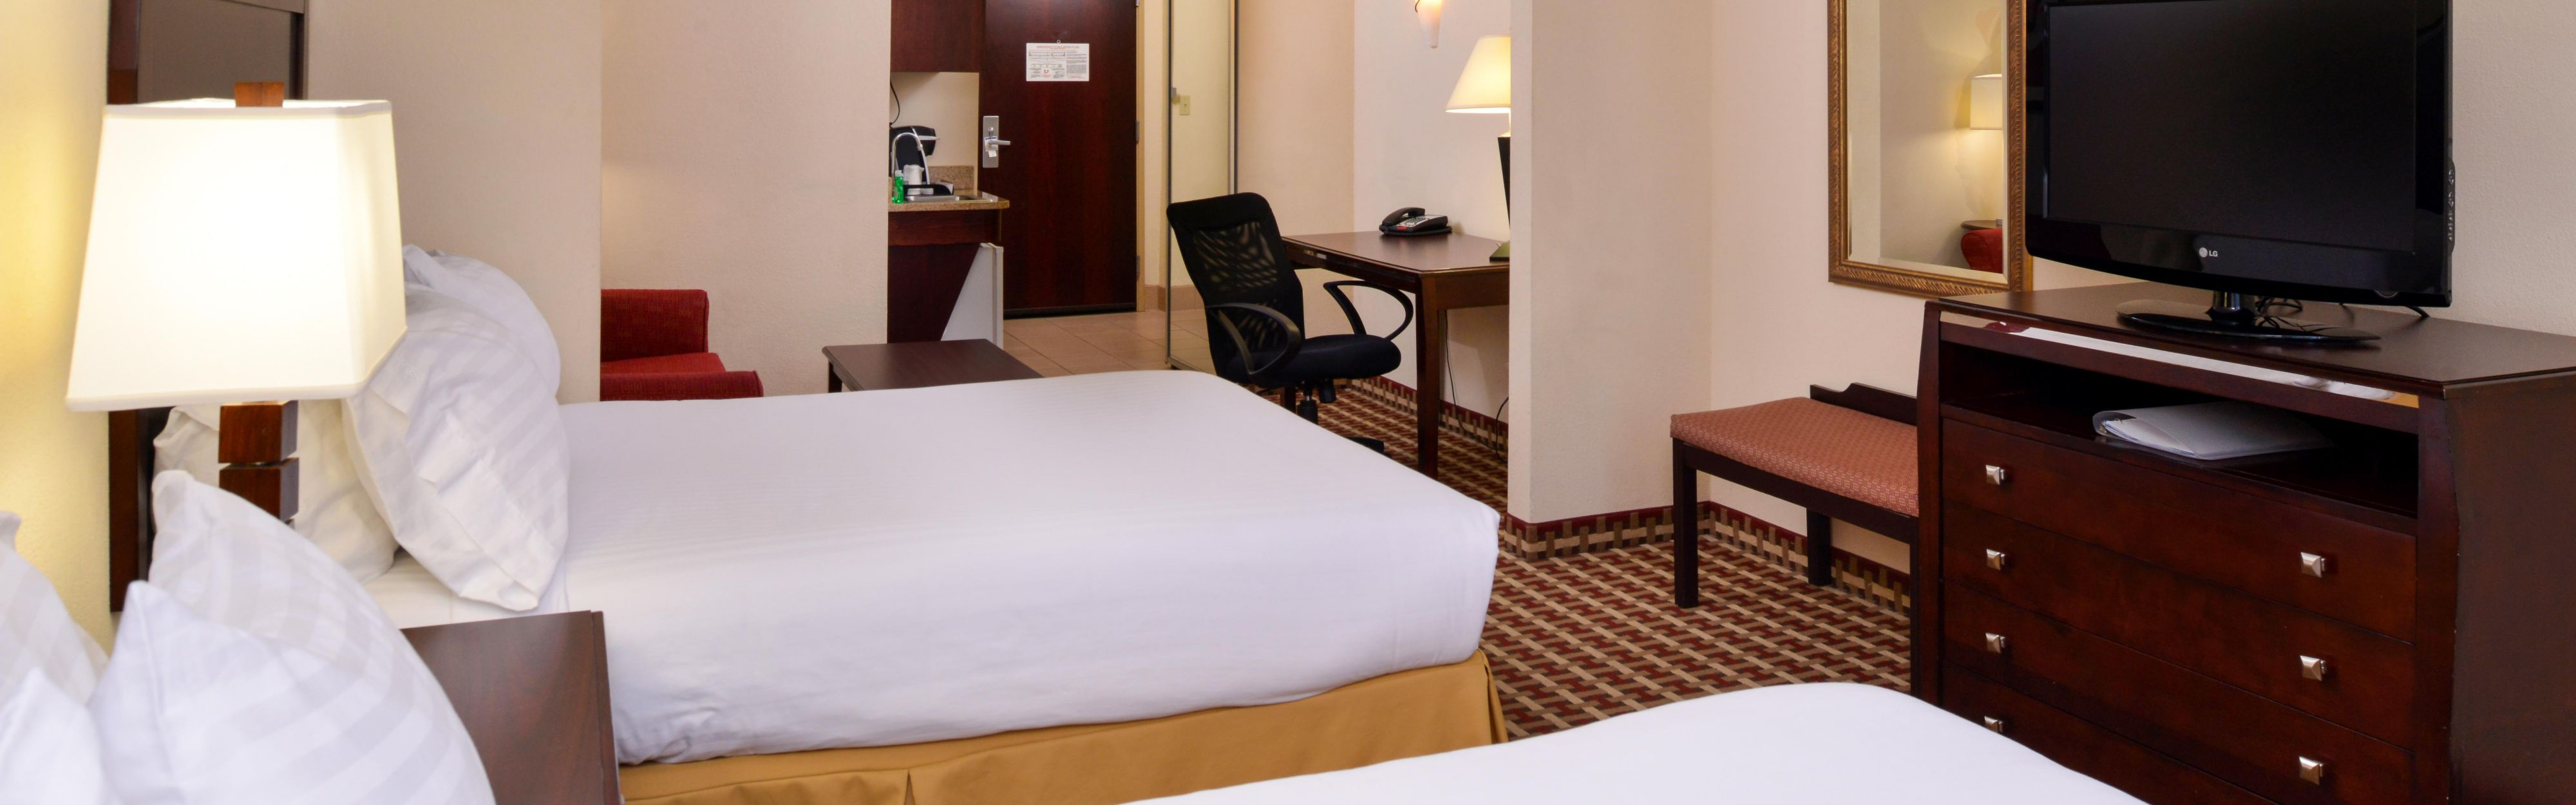 Holiday Inn Express & Suites White Haven - Poconos image 1